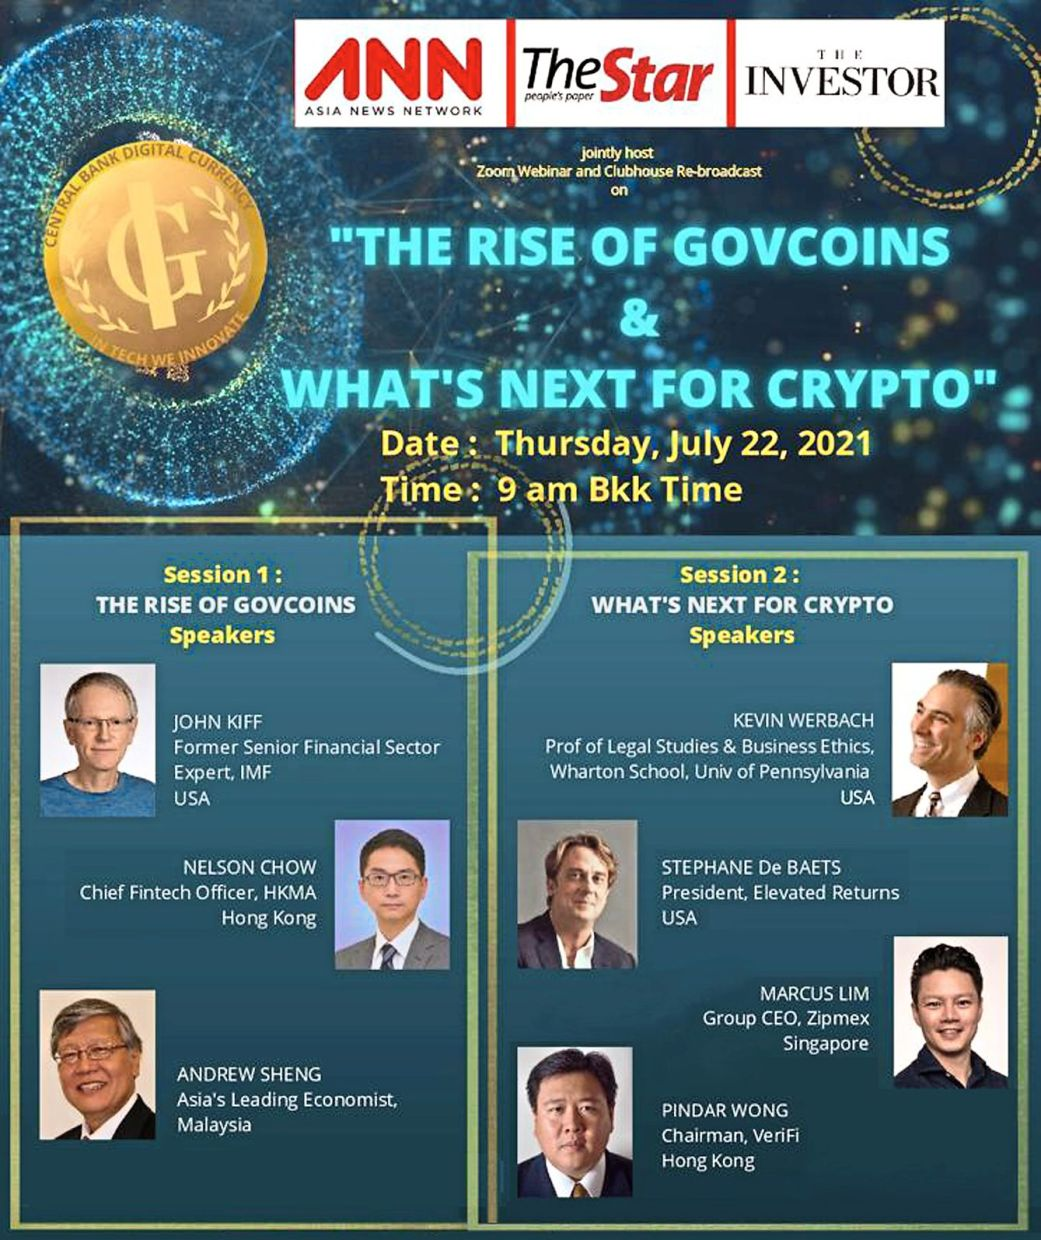 Speakers at the webinar co-hosted by The Investor, a tech media outlet run by The Korea Herald, Malaysia's The Star and the Asia News Network.